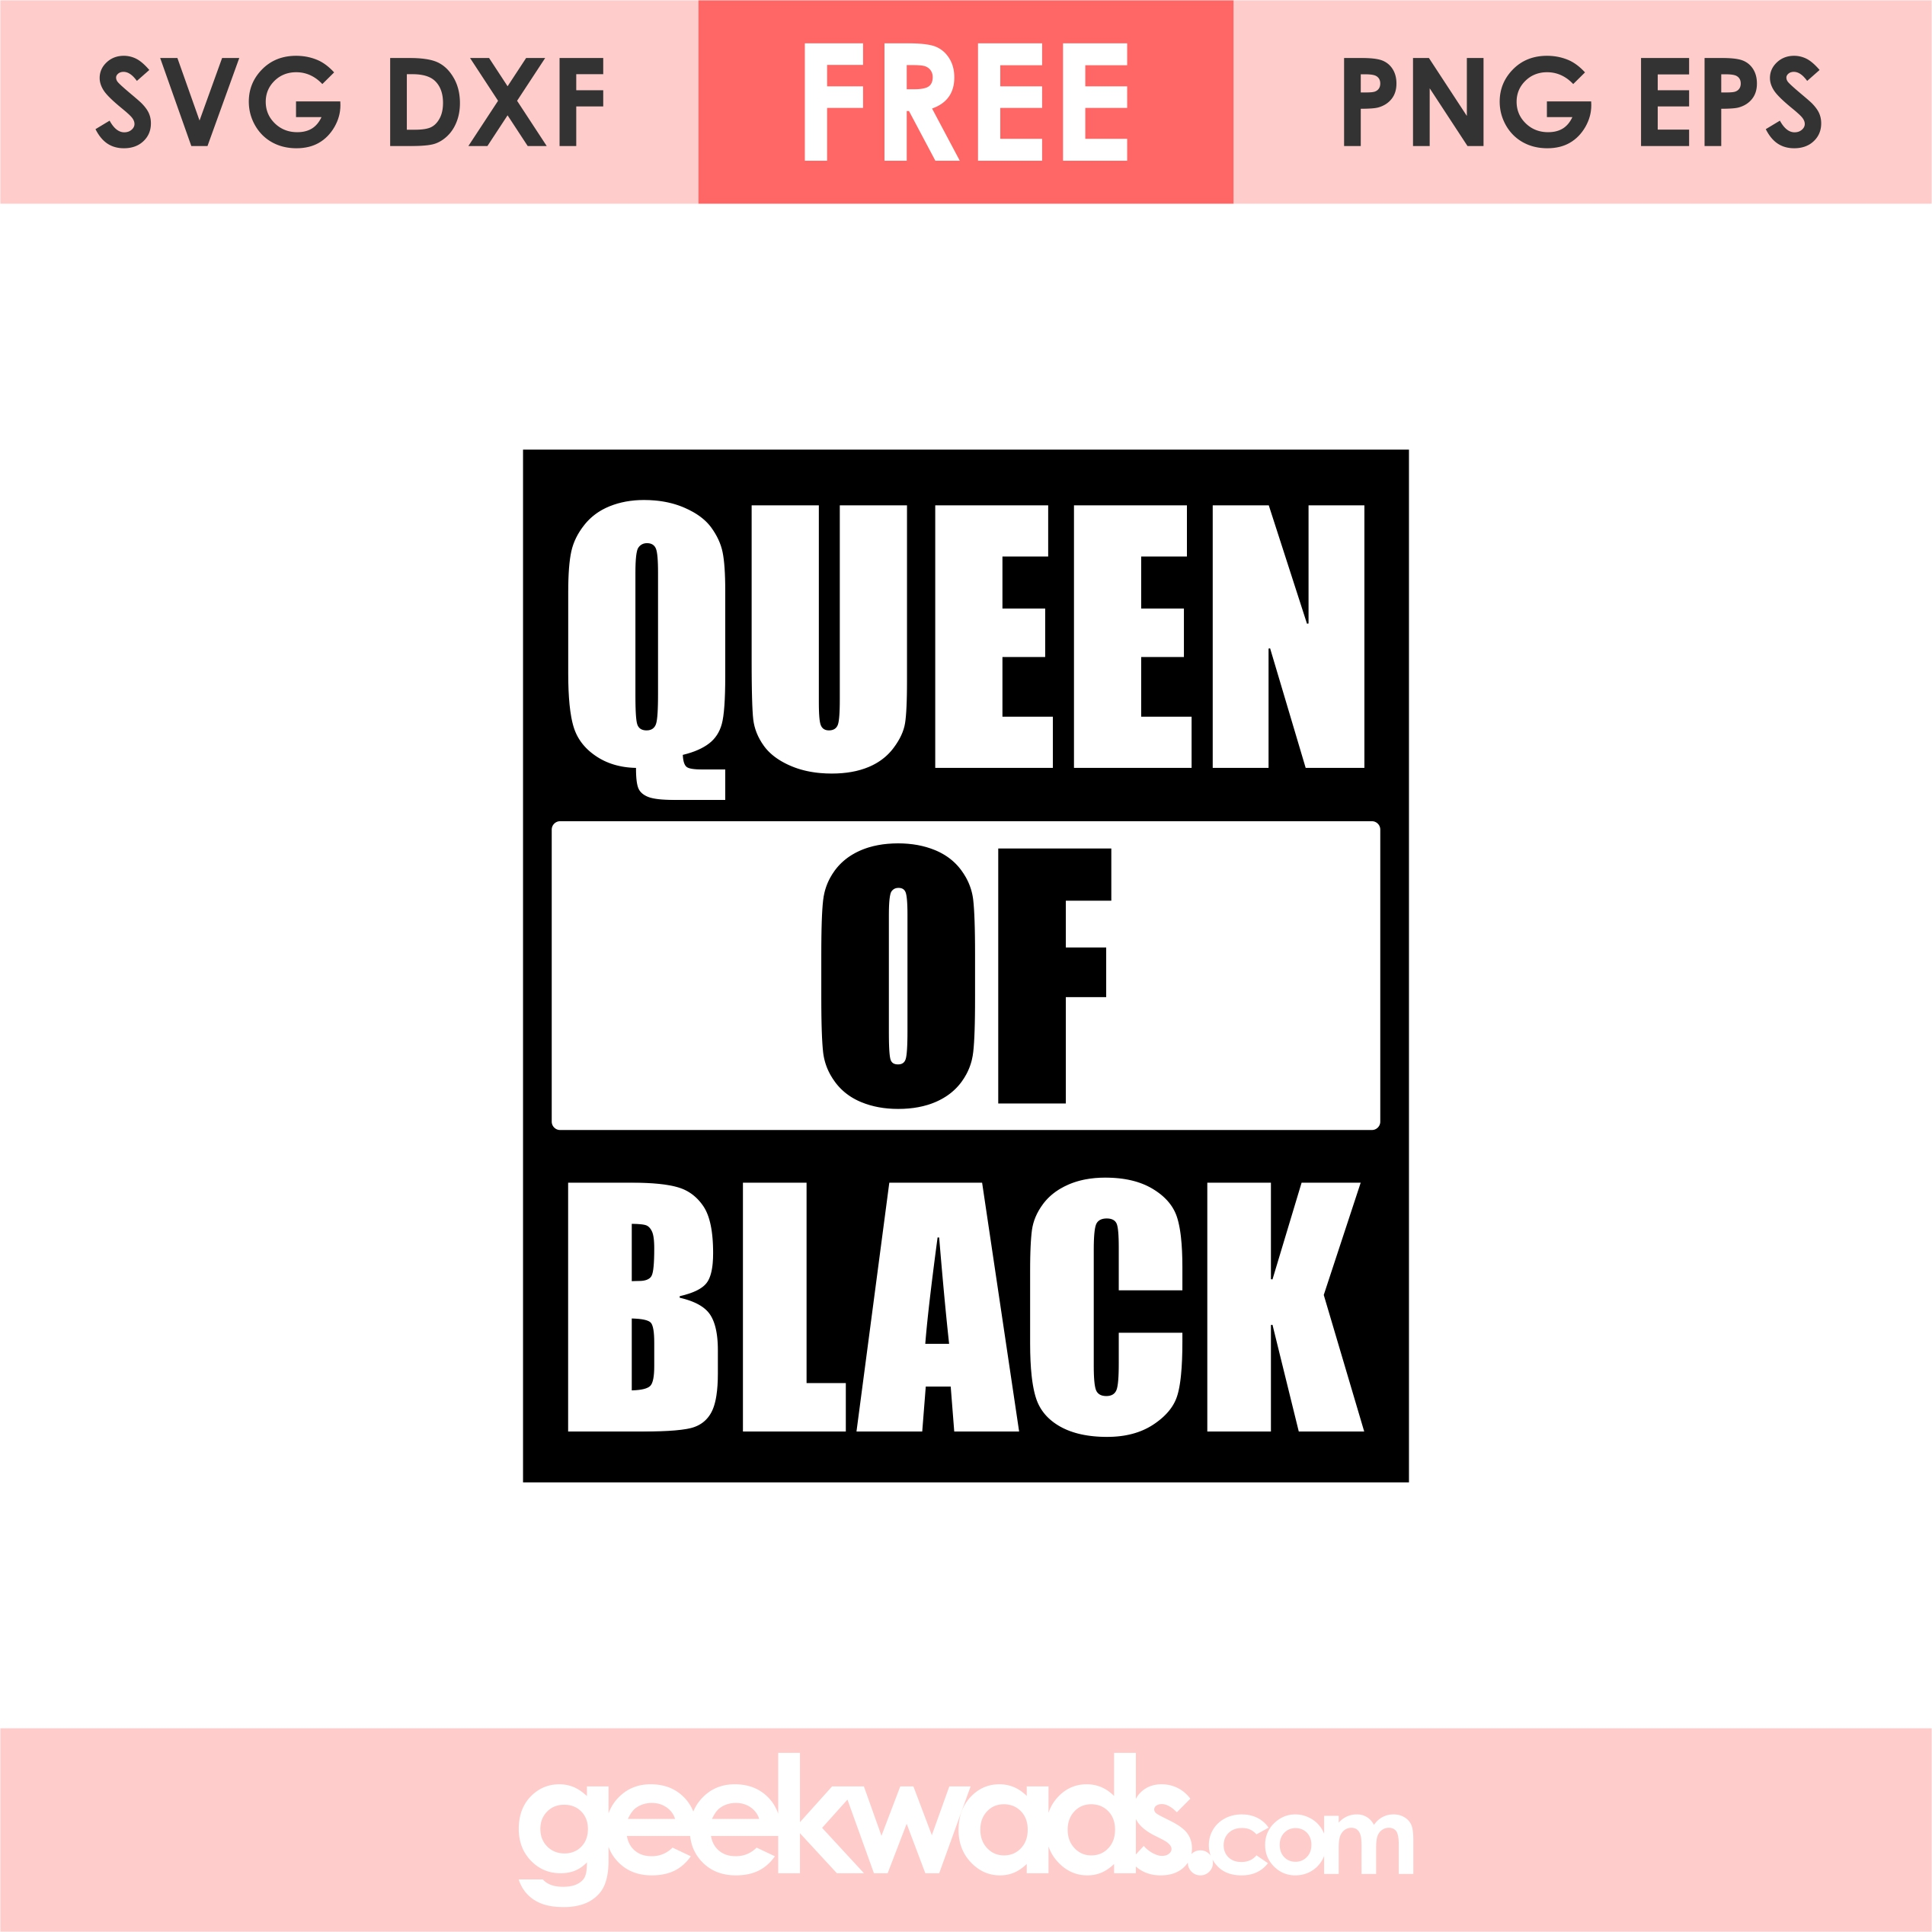 Free Queen of Black SVG